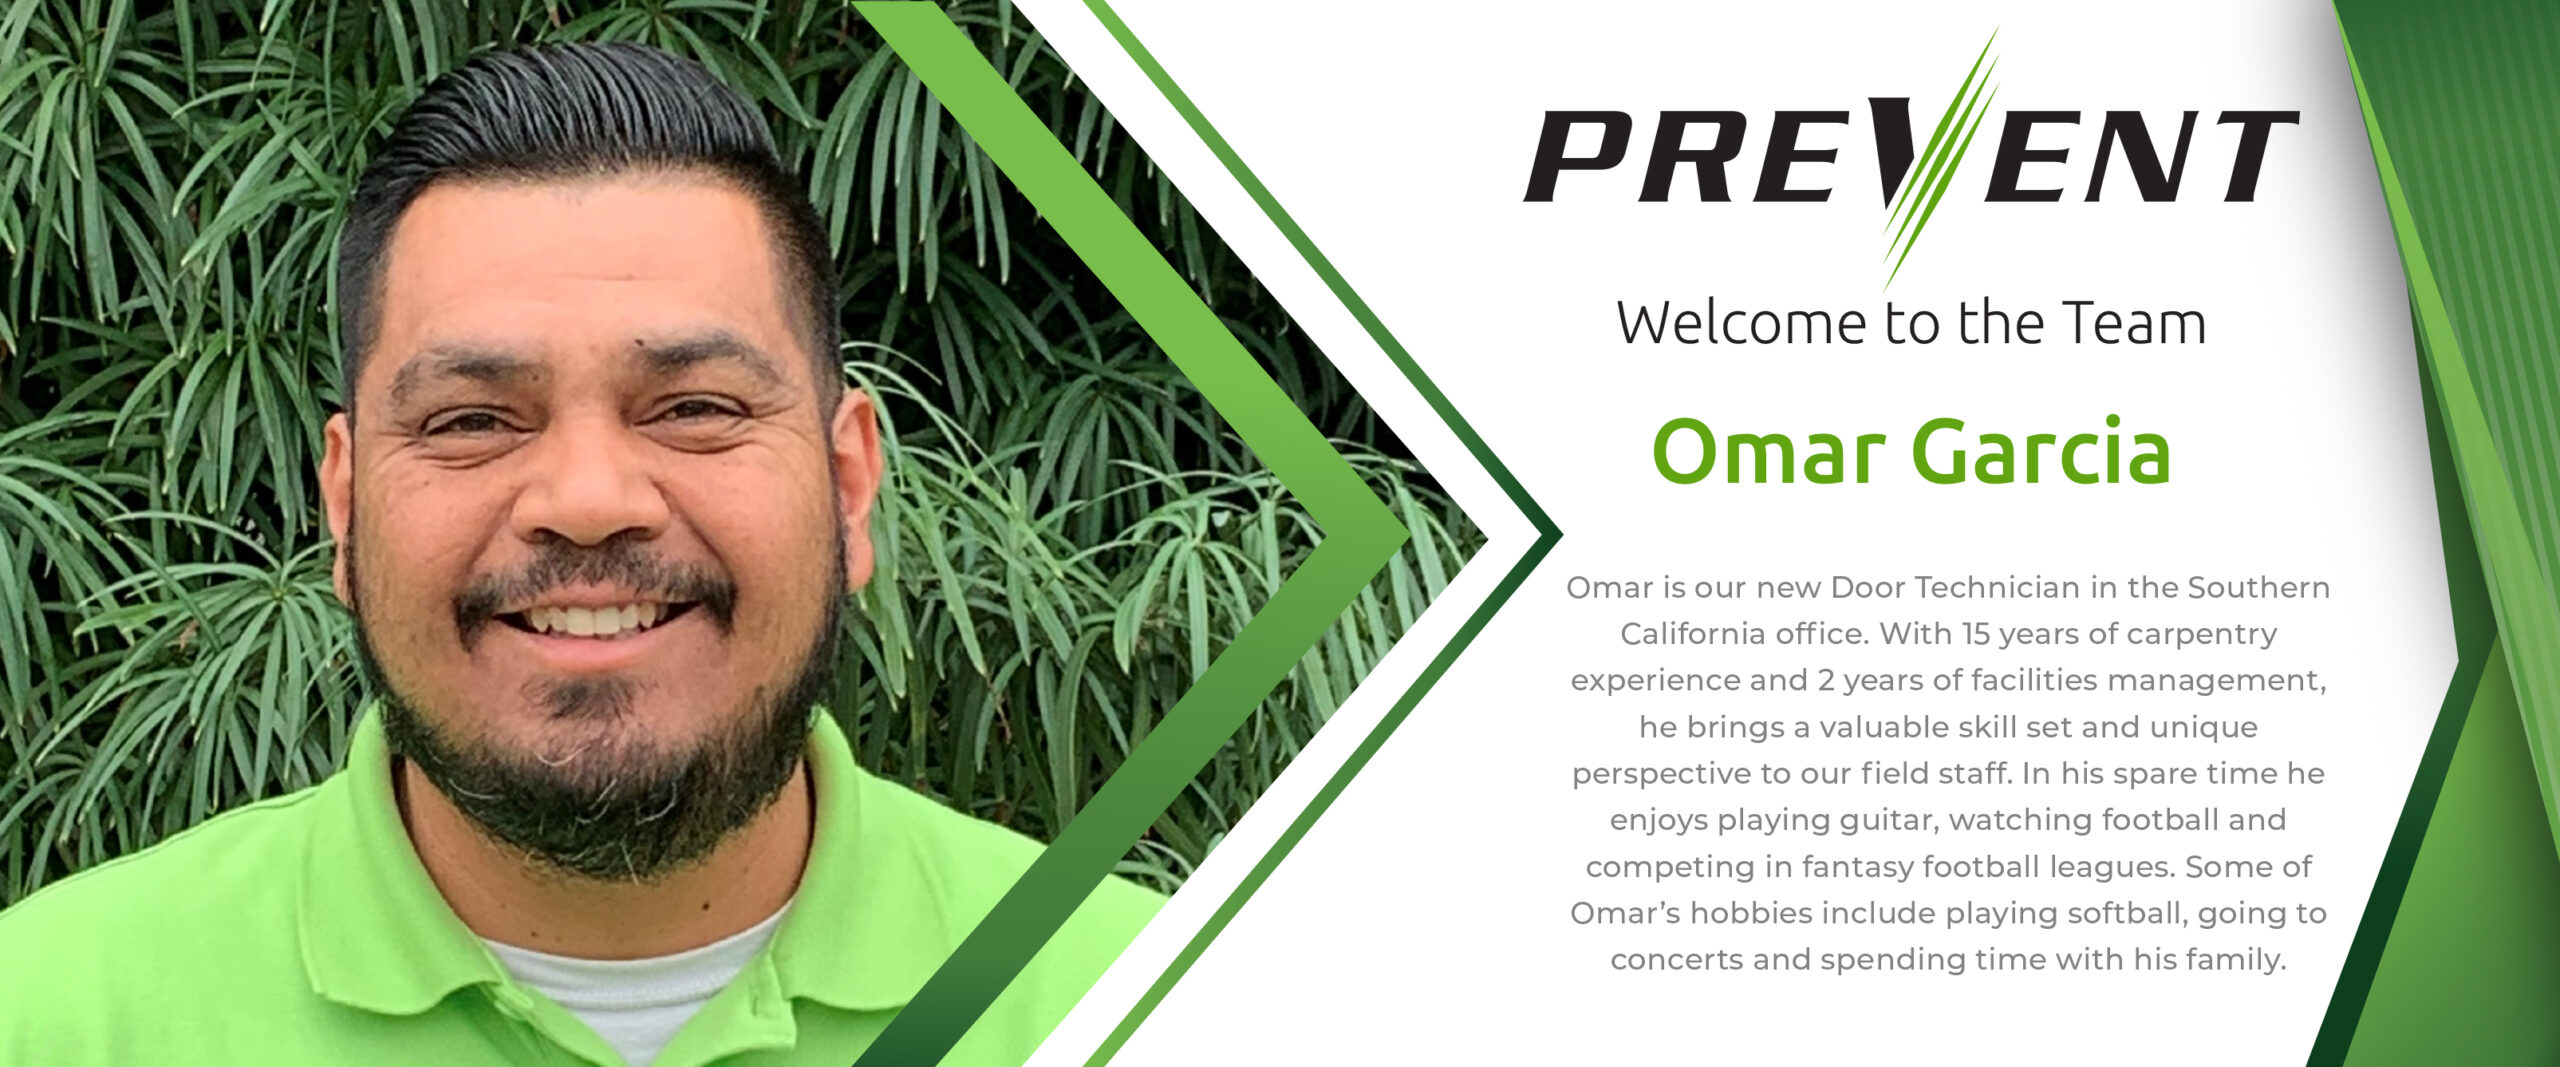 Fire Barrier Management- New Employee Omar Garcia